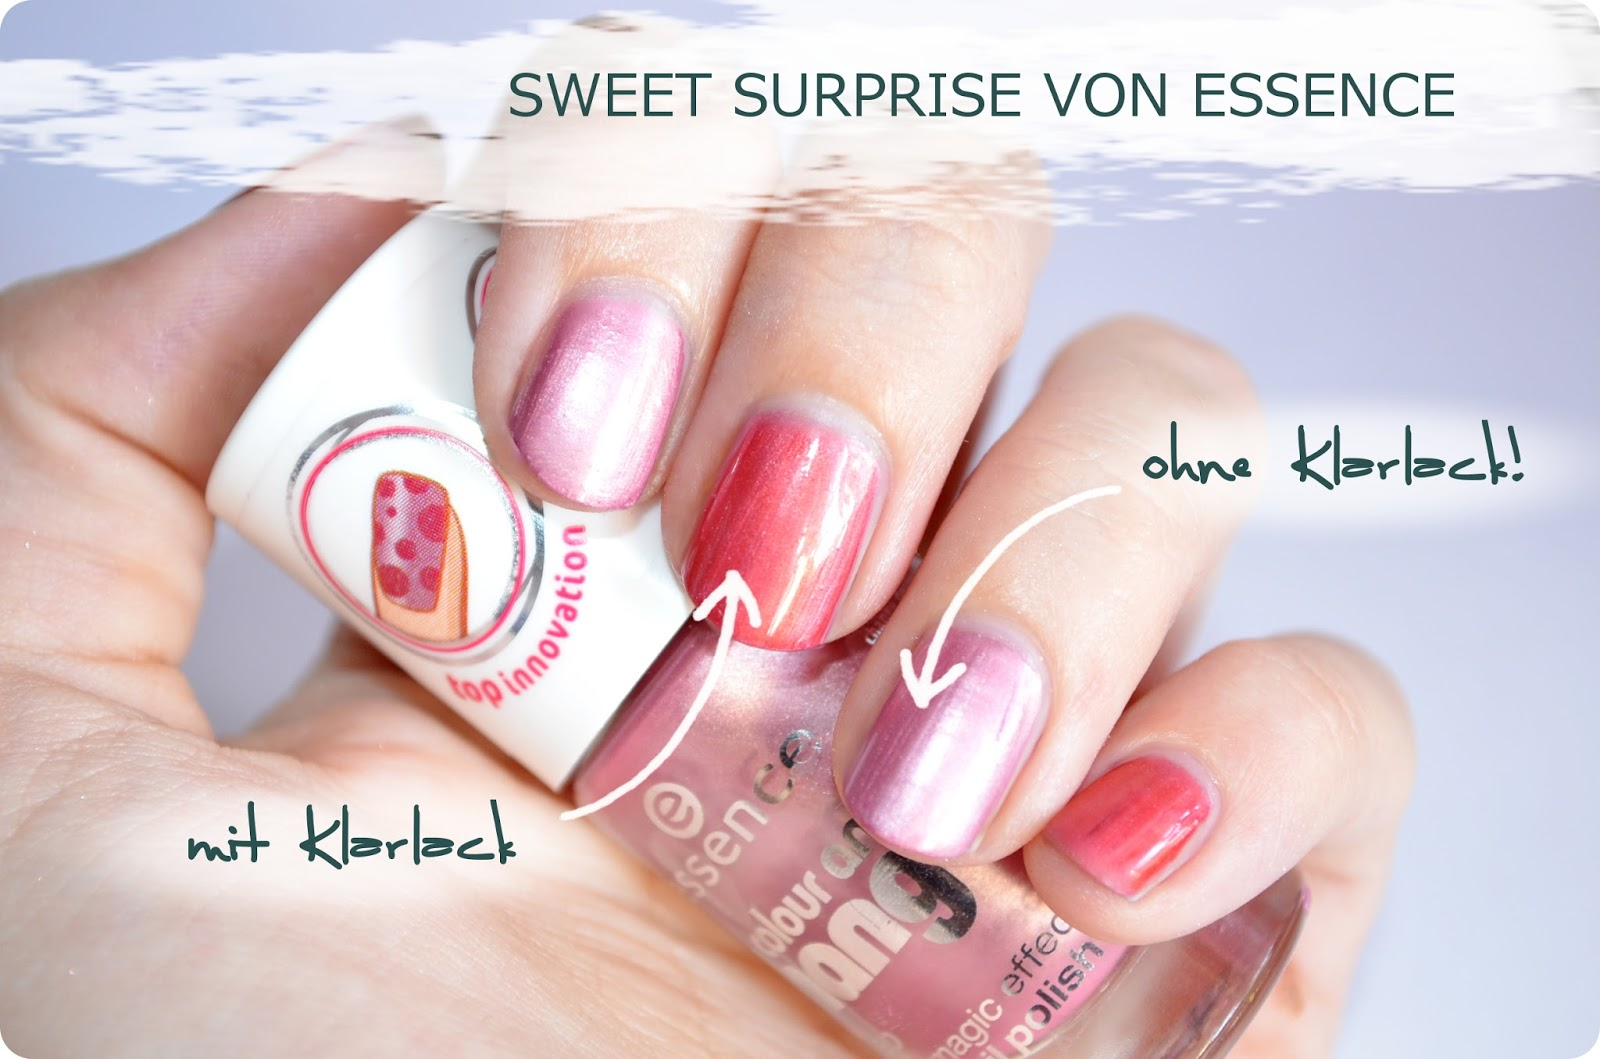 essence Colour & Change Nagellack sweet surprise